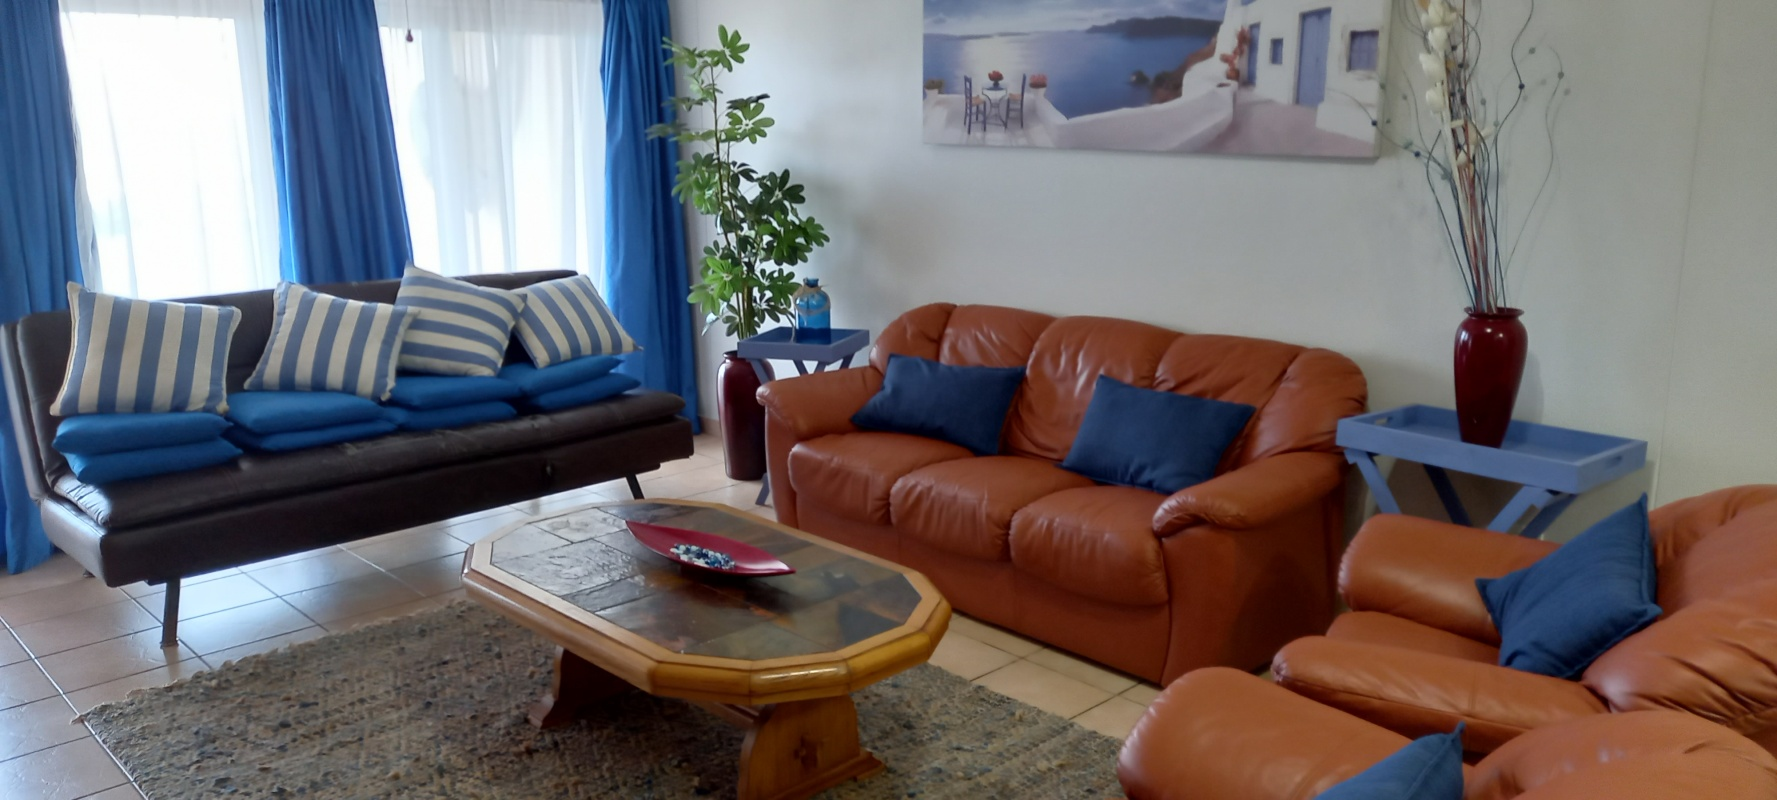 3 Bedroom   For Sale in Margate   1326370    Photo Number 5